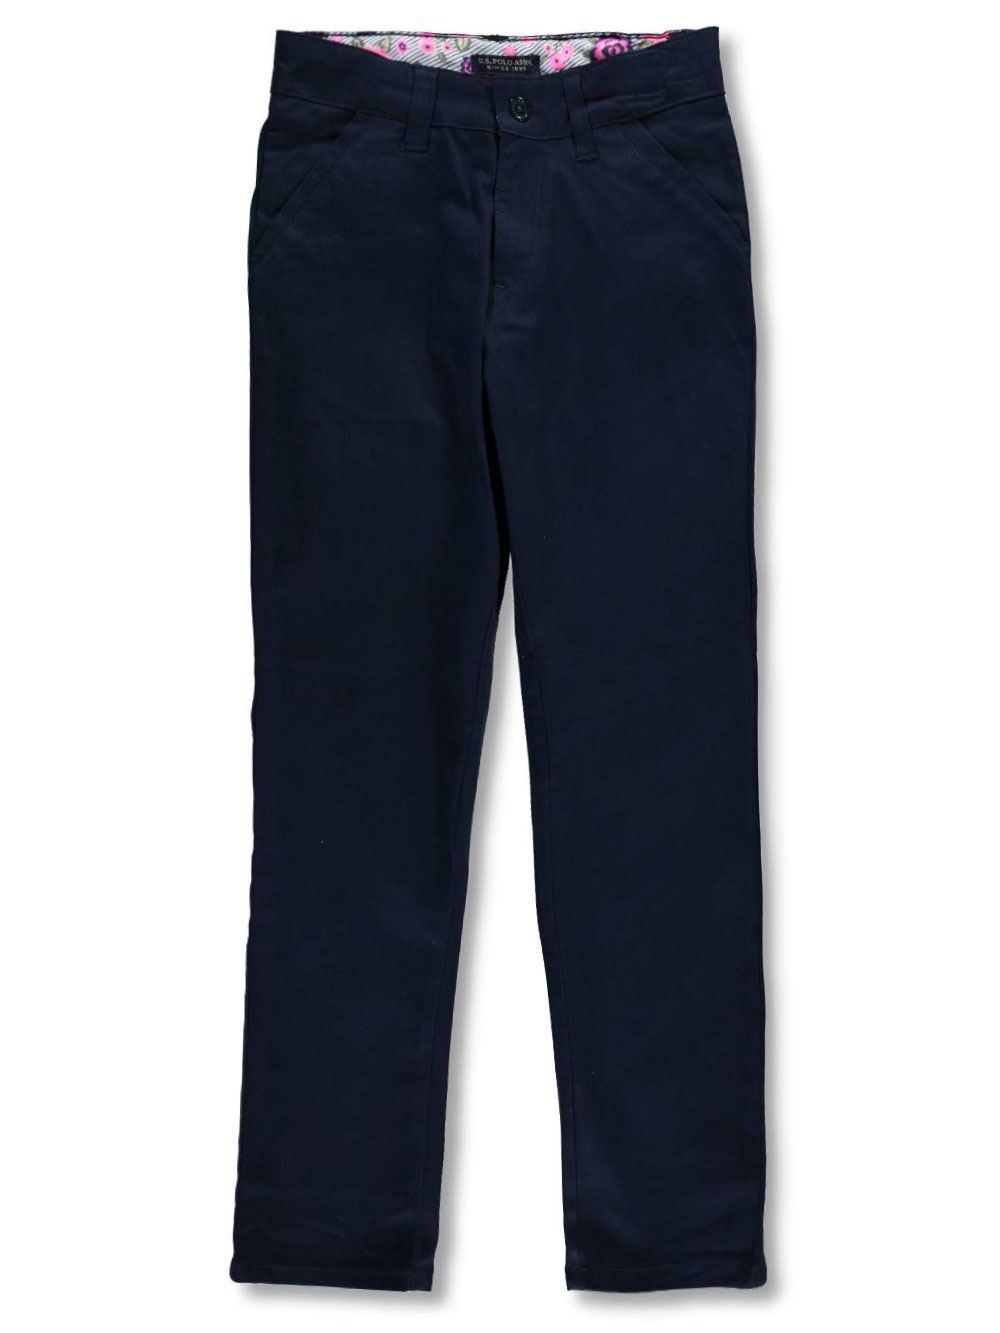 6 More Styles Available Polo Assn Boys Twill Pant U.S Classic Navy